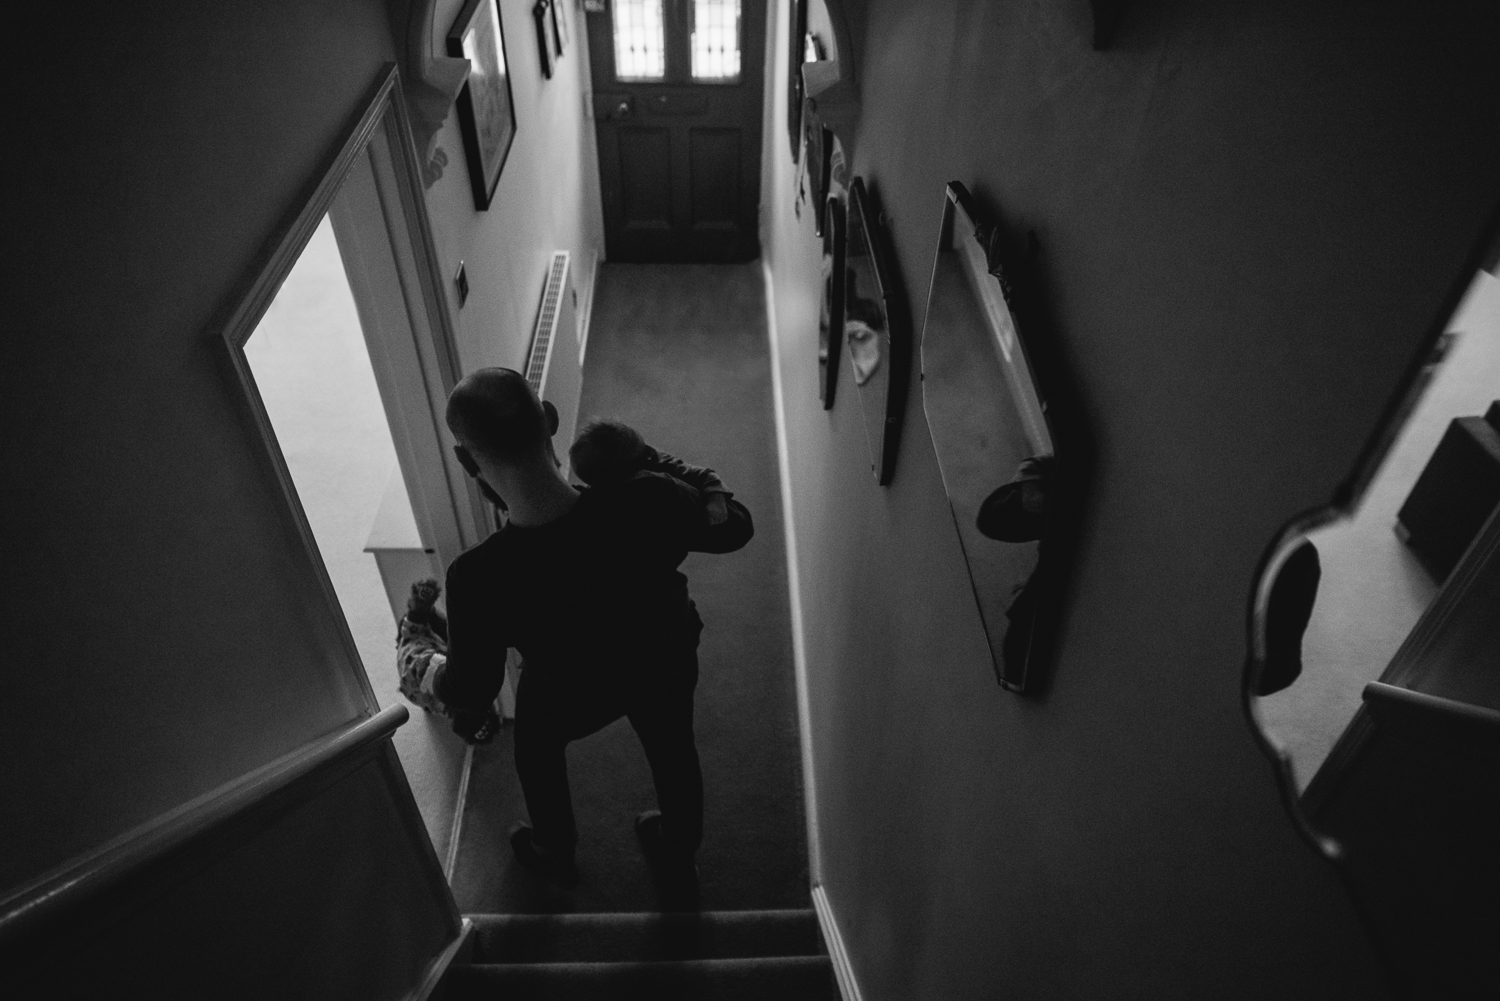 father goes downstairs with baby quiet mood black and white